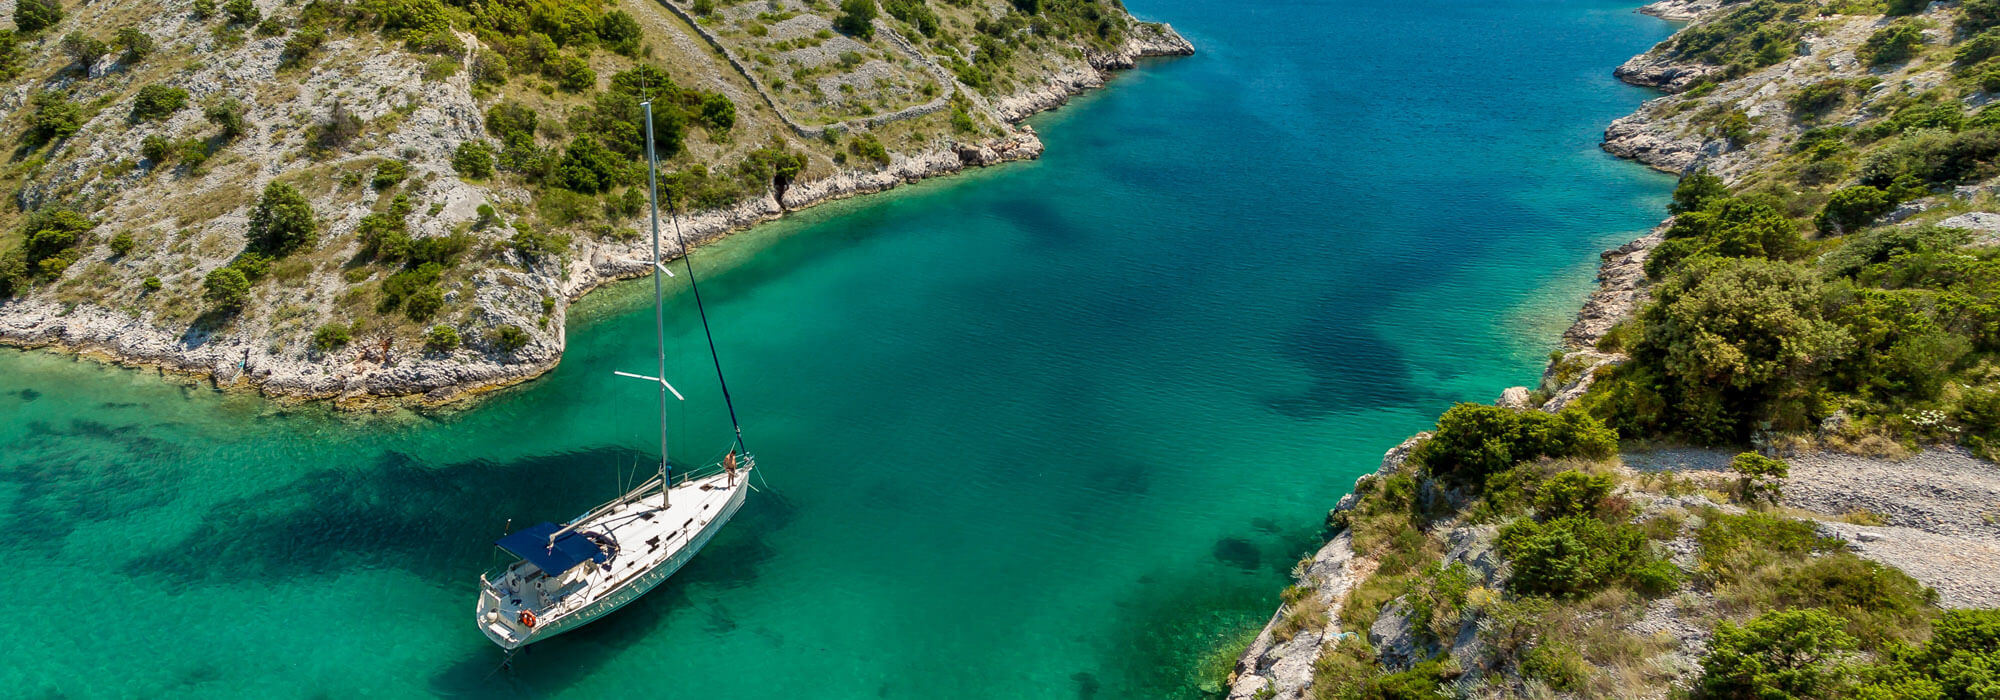 sailing-and-yacht-charter-in-croatia_02